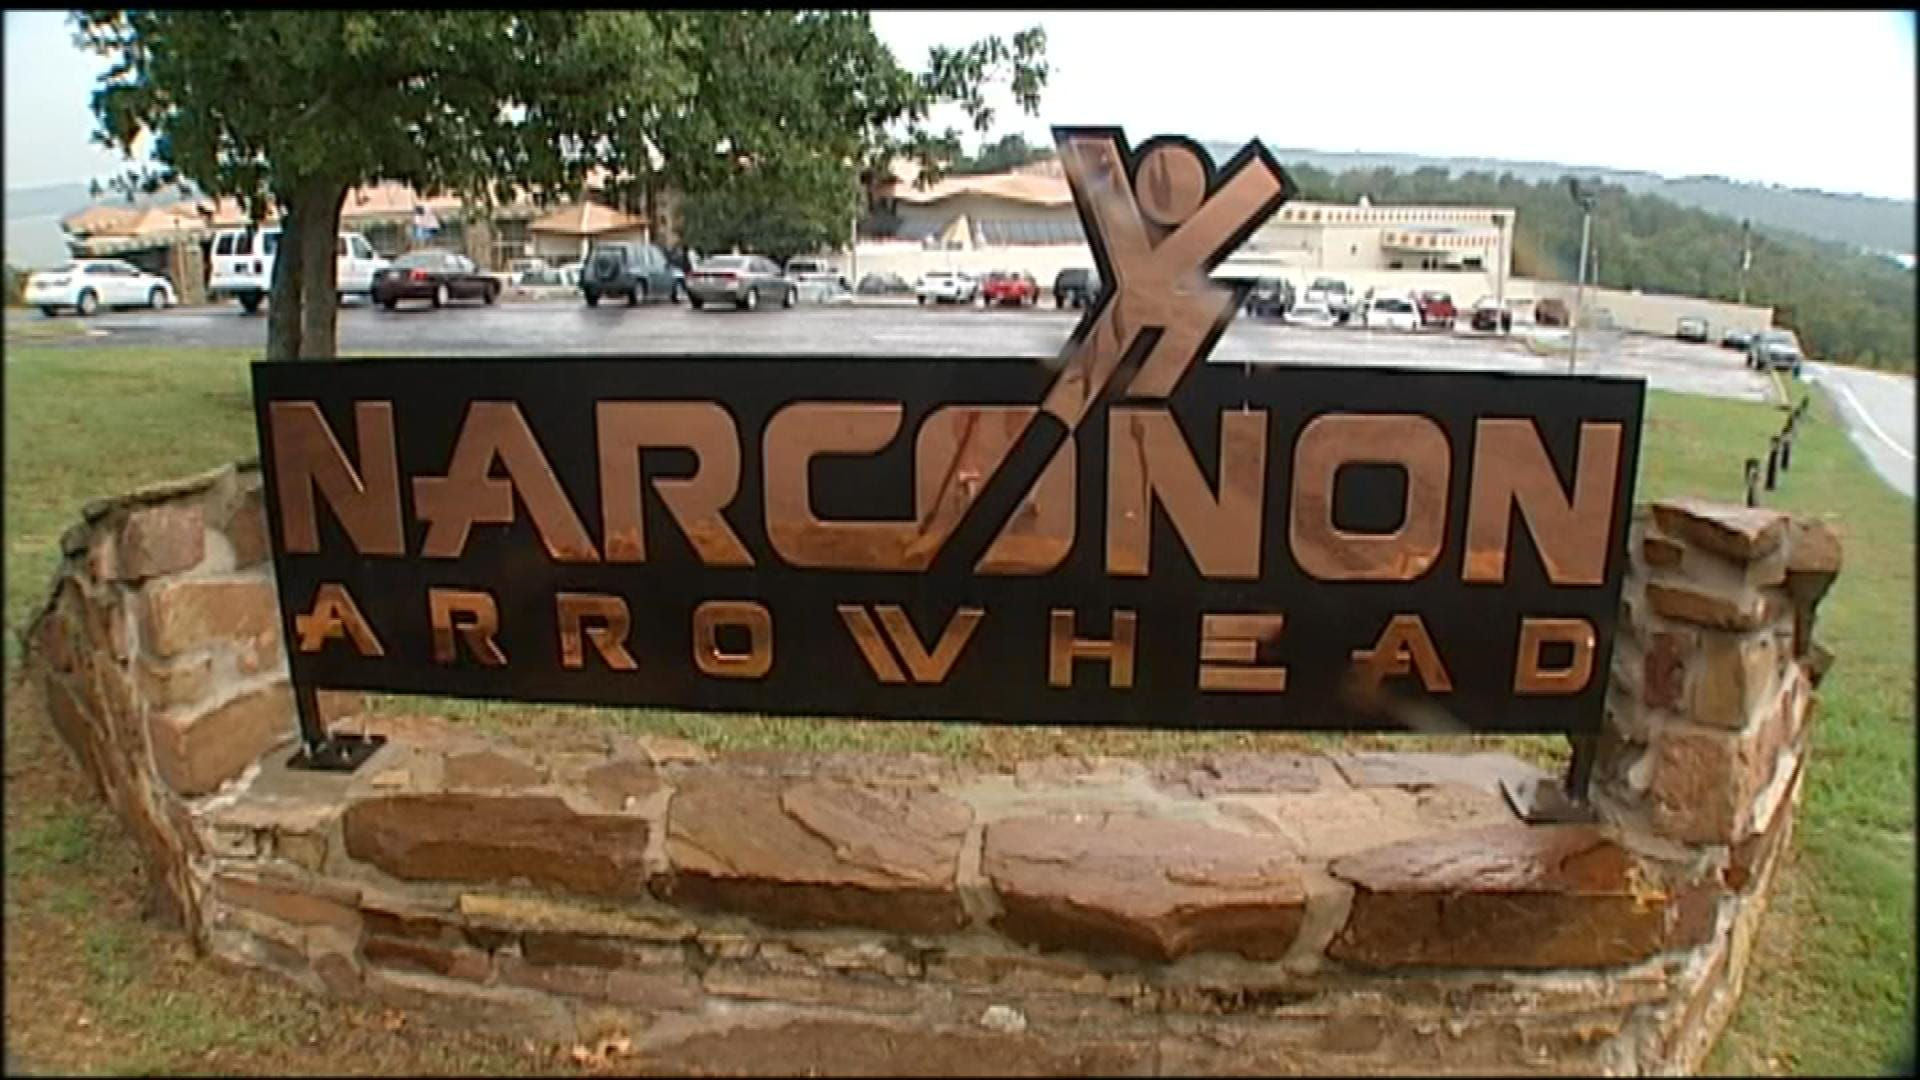 Former Inspector General Suing State For Wrongful Termination After Narconon Whistleblowing